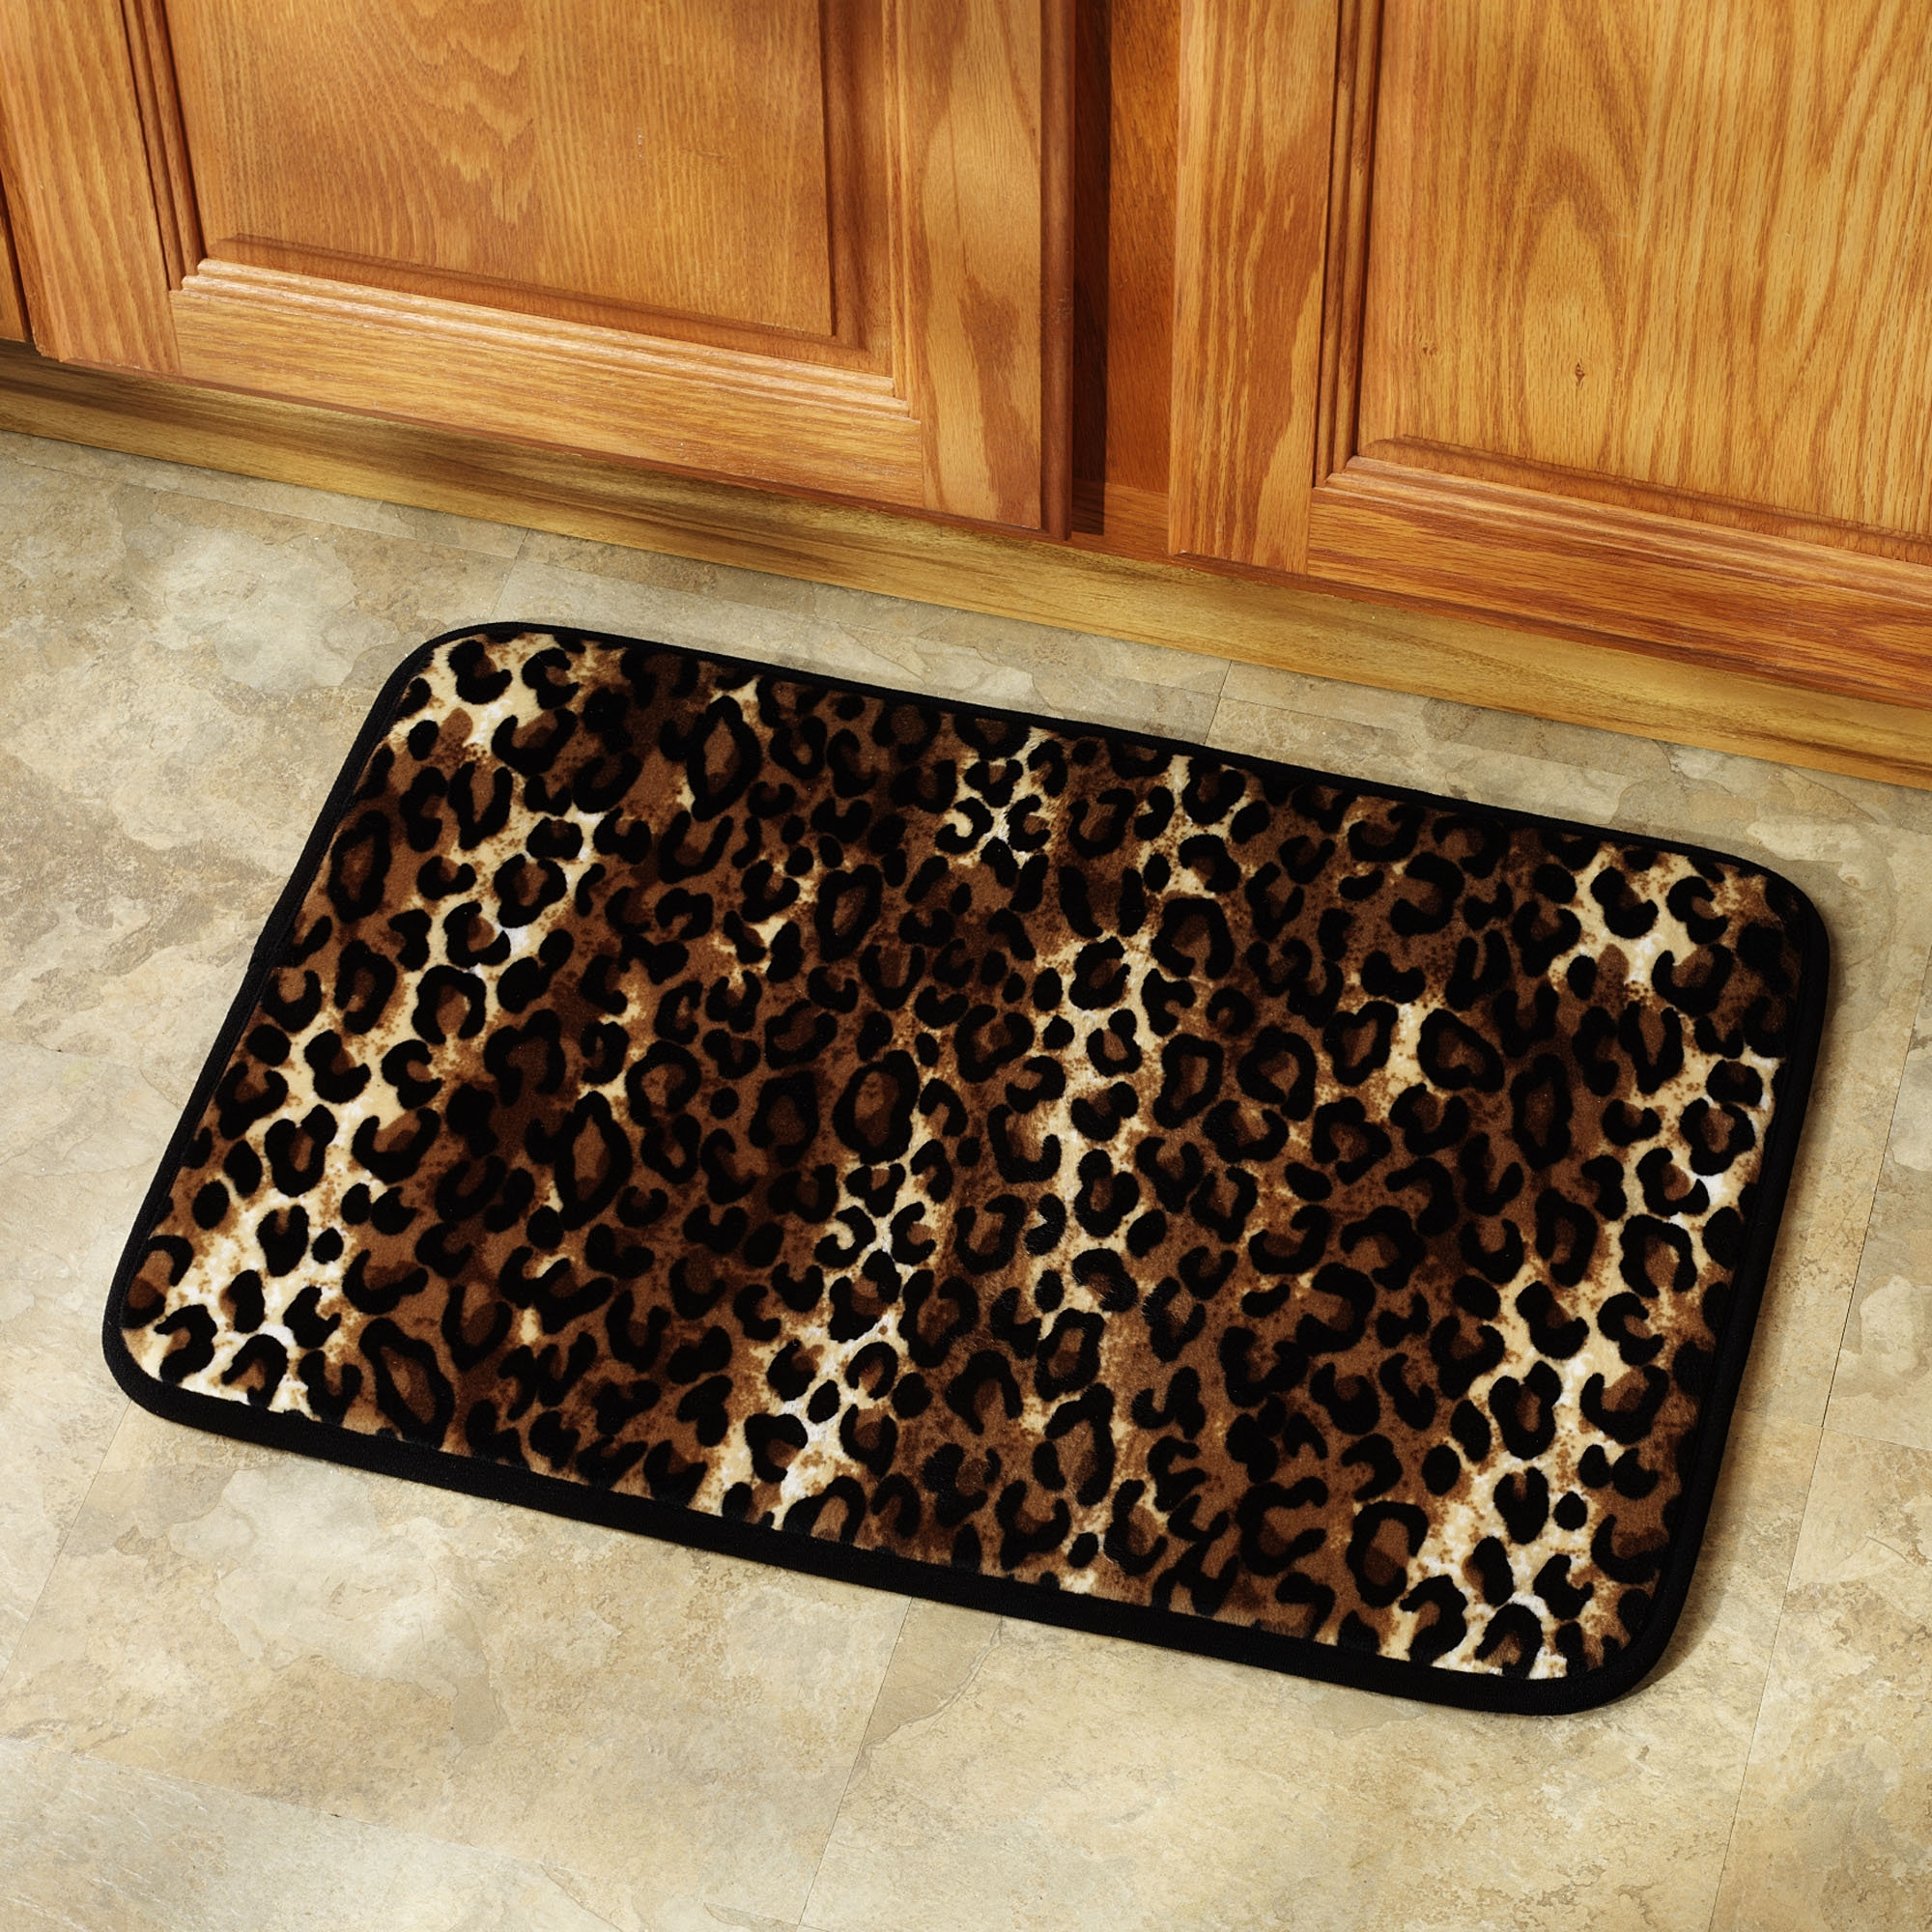 Permalink to Leopard Bathroom Rug Set